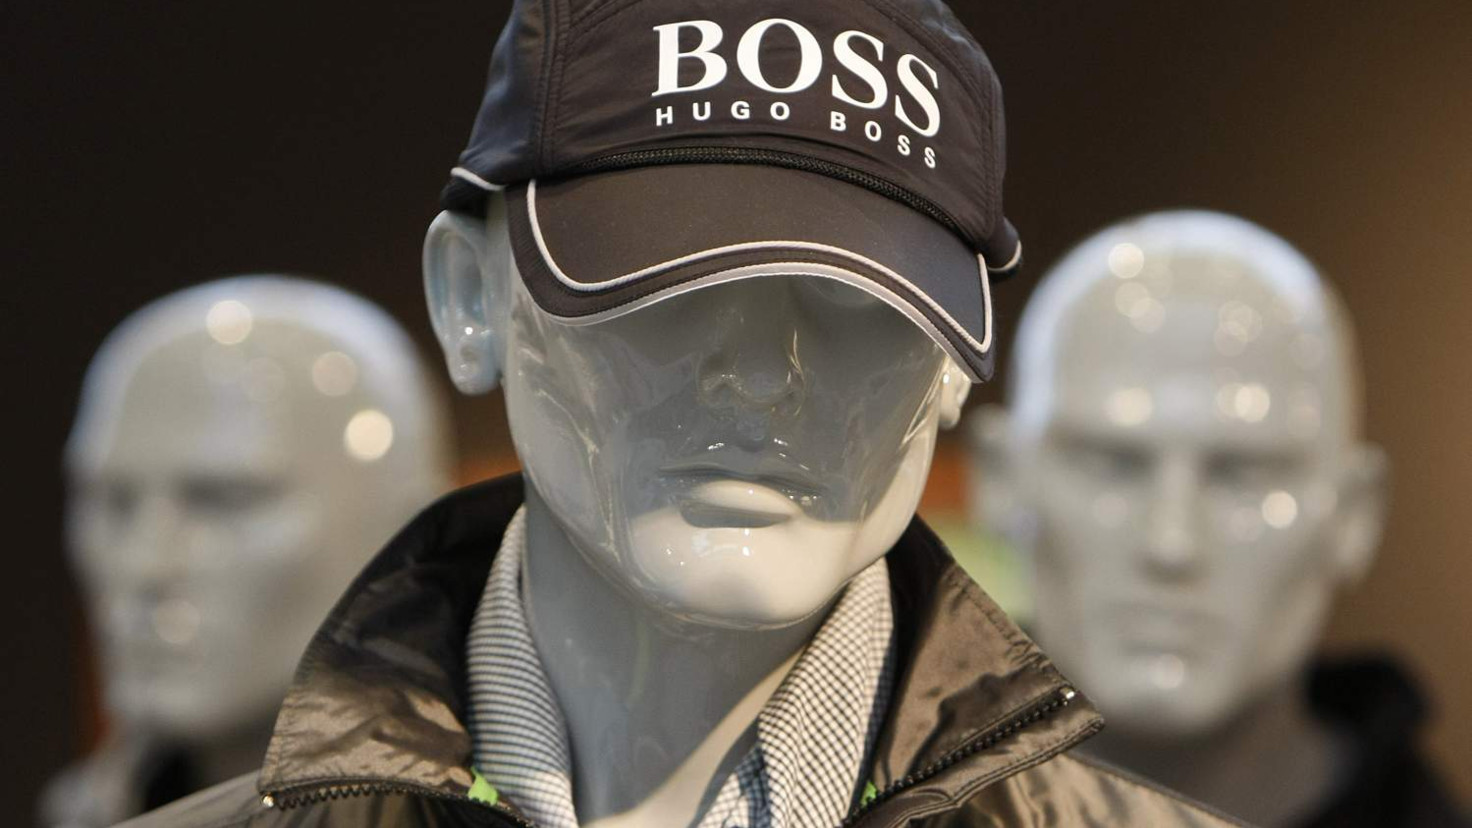 Hugo Boss shares plummet